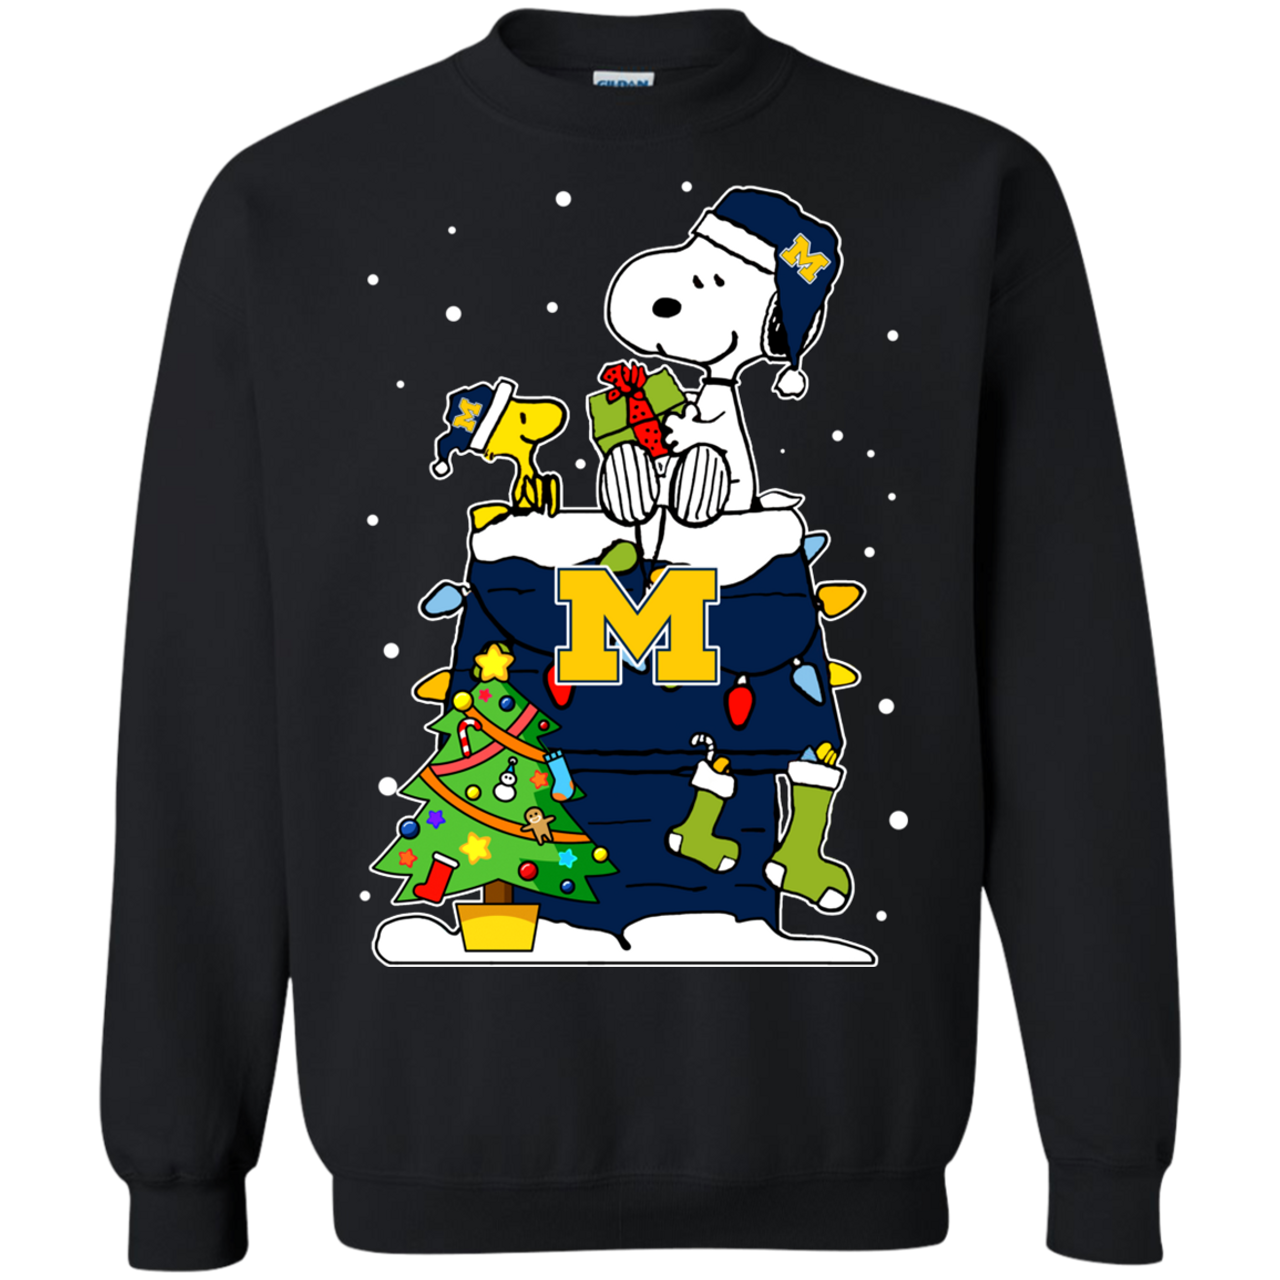 27a25ac48b1a6 Michigan Wolverines Ugly Christmas Sweaters Snoopy Woodstock s Sweatshirts